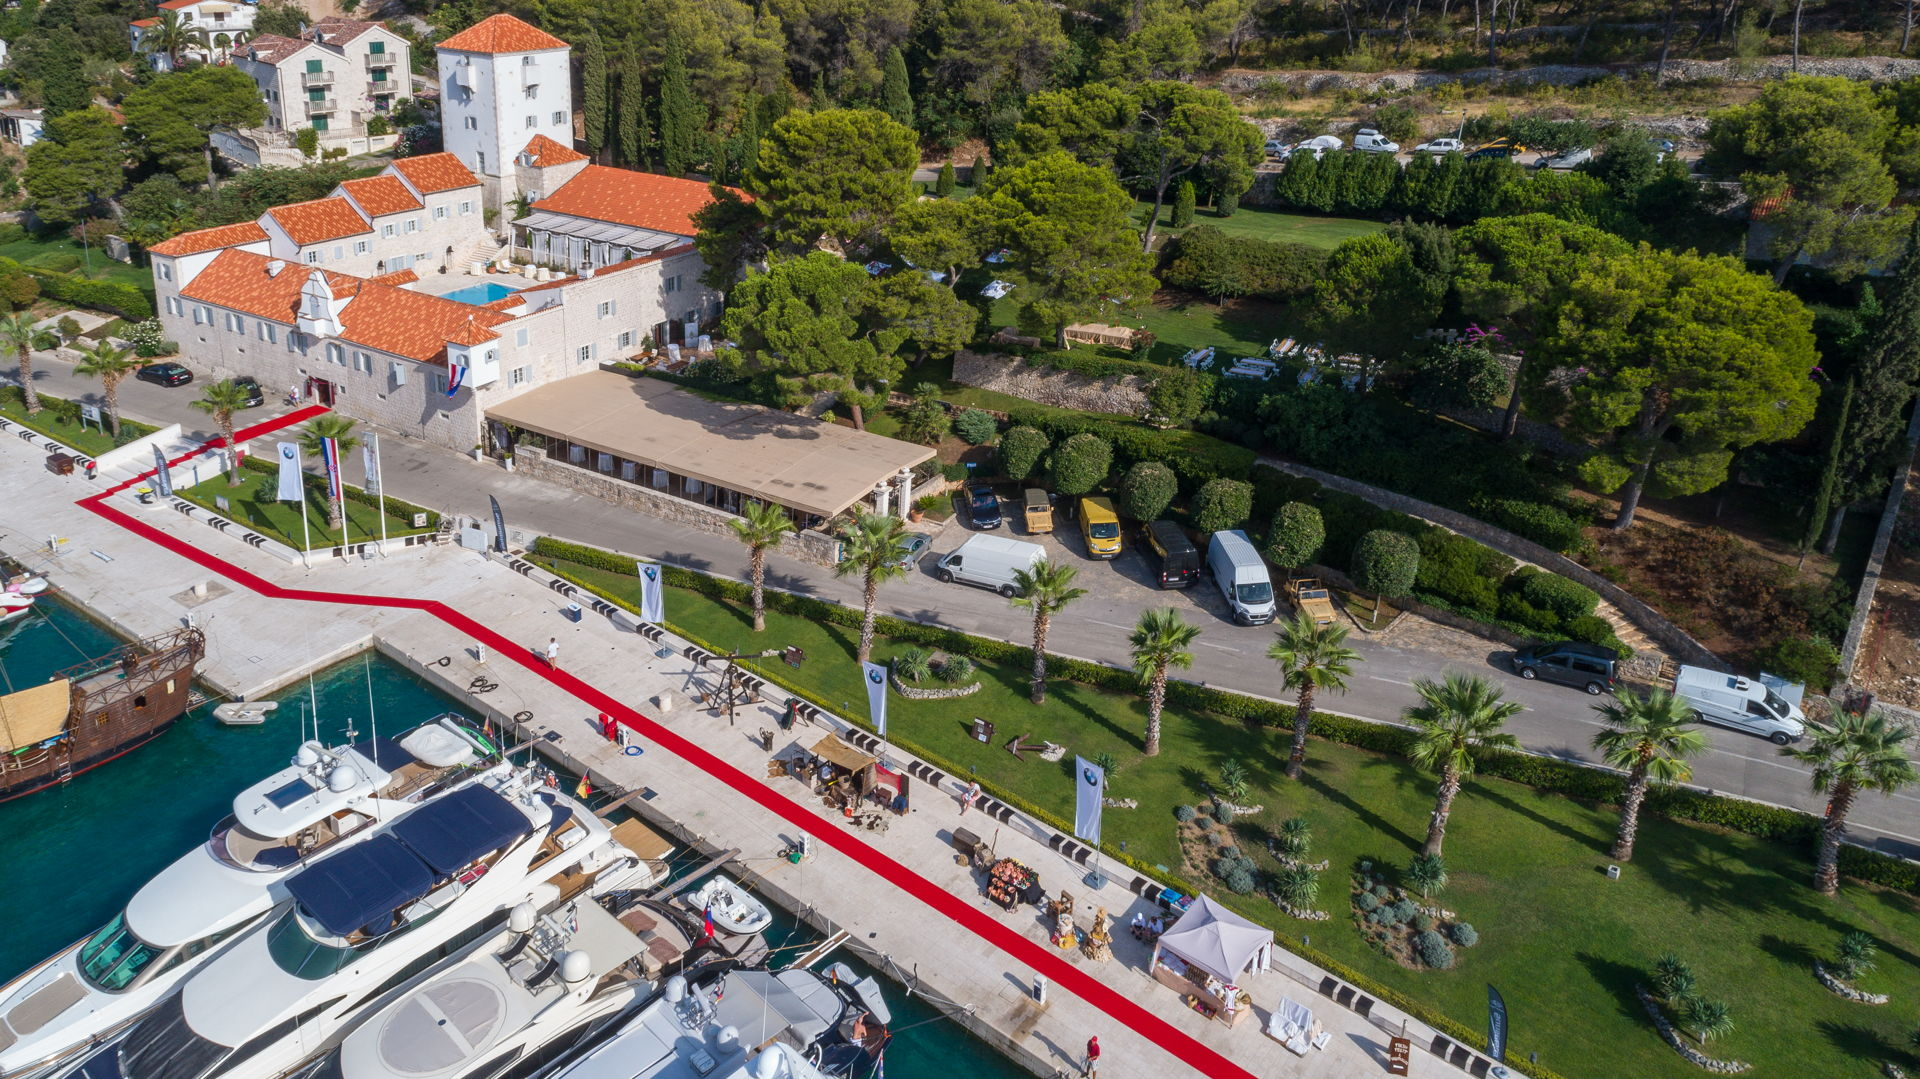 Heritage Villa M&M with Marina, restaurant and a large courtyard